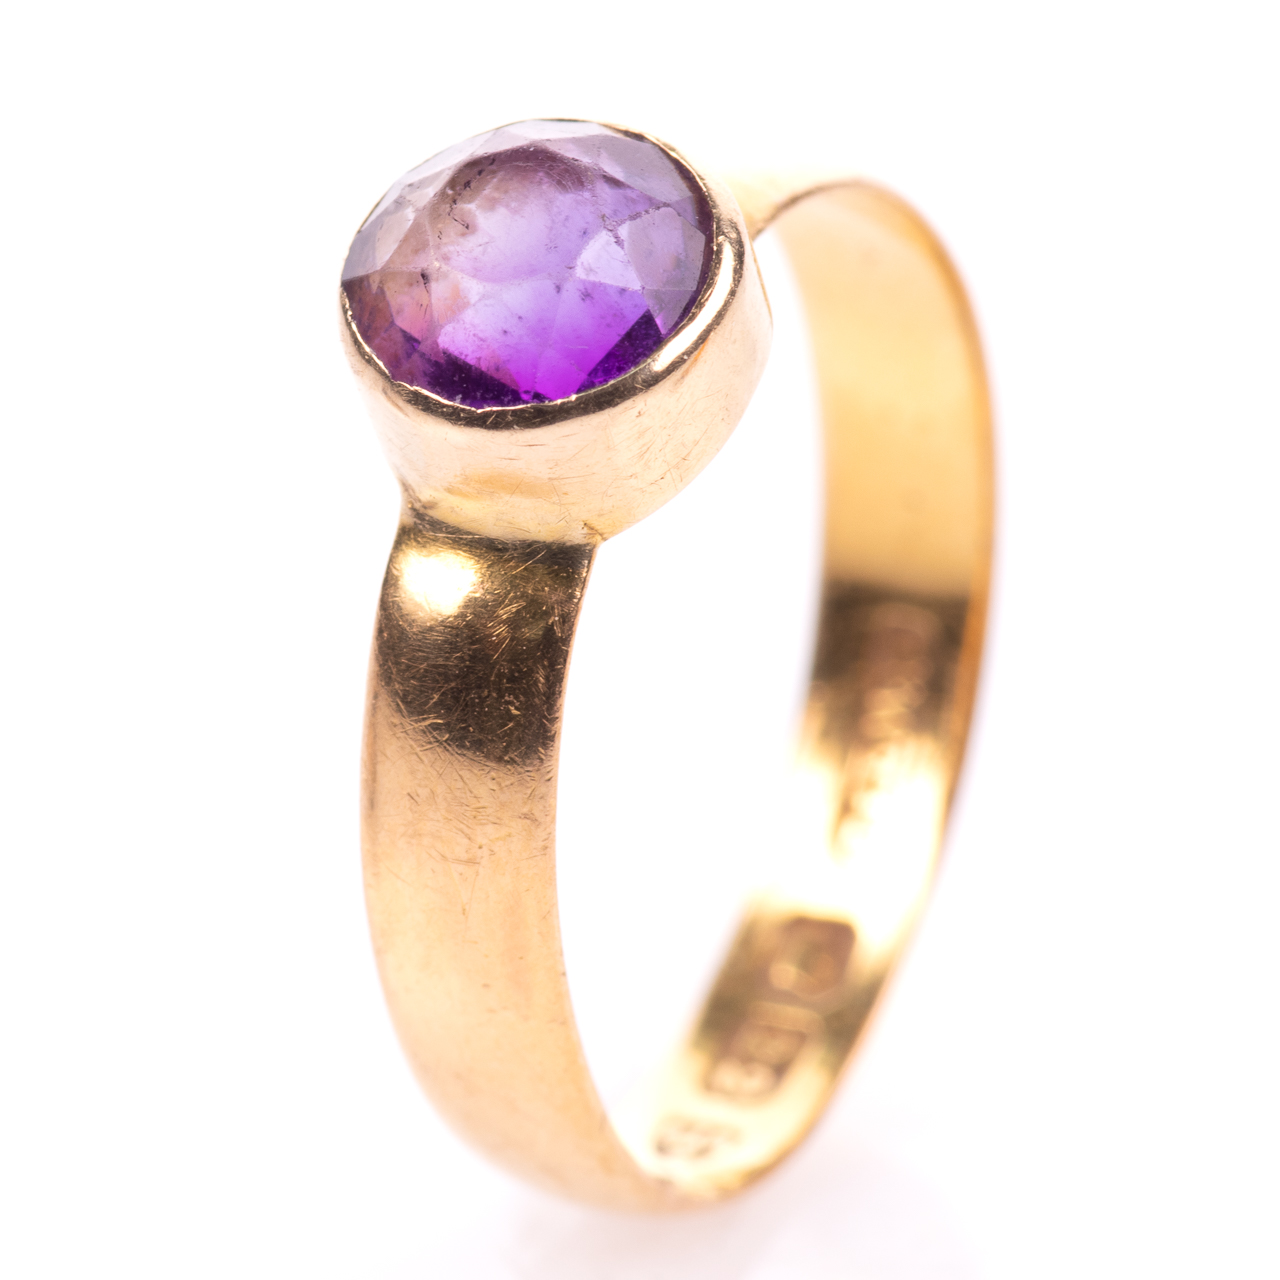 22ct Gold Victorian Amethyst Ring Chester 1899, Howard & Walsh